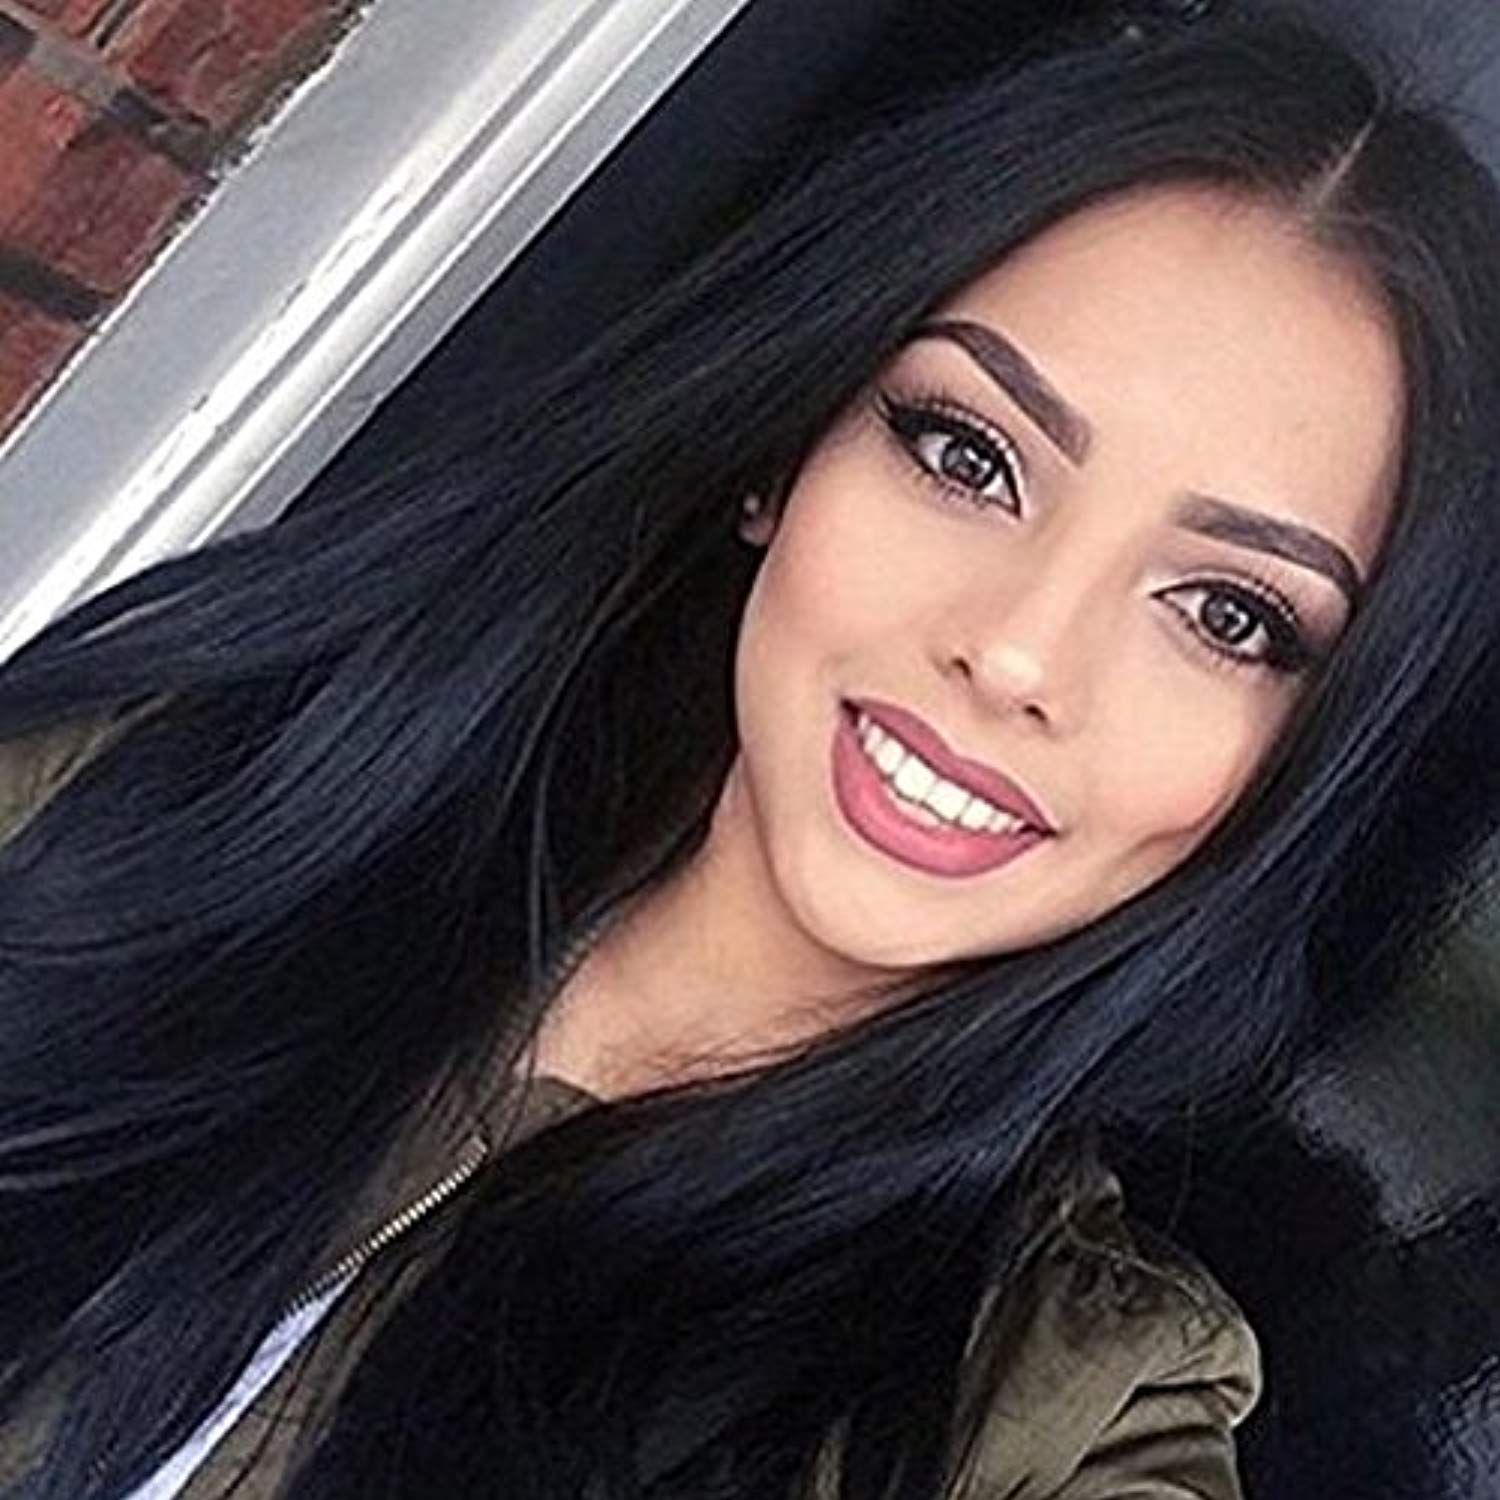 2020 New Straight Wigs Black Long Hair Straight Choppy Bob Blonde Wig With Bangs Black Girl